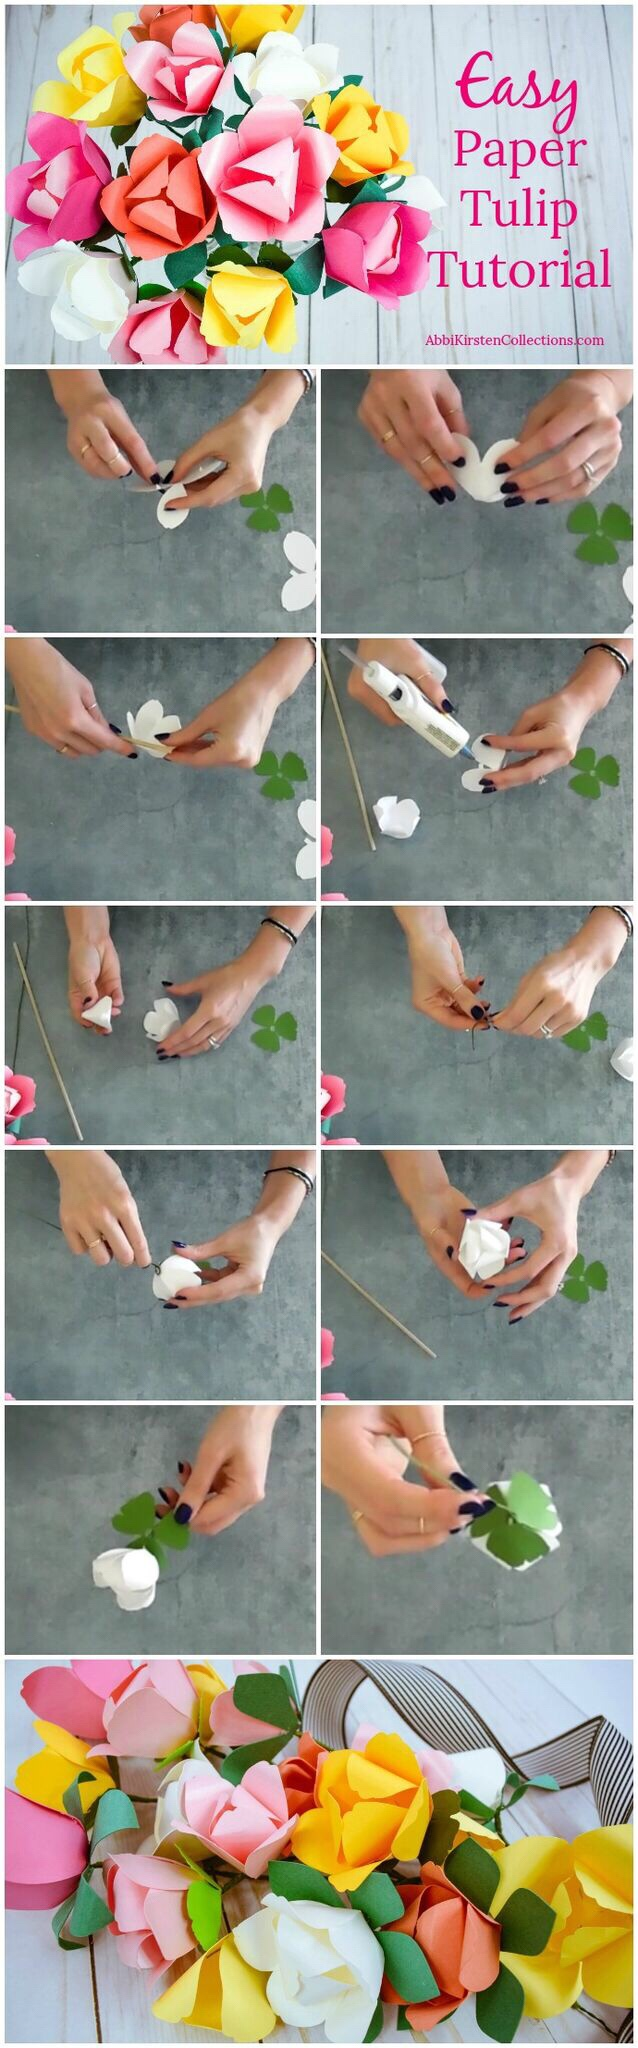 Easy paper tulip tutorial.